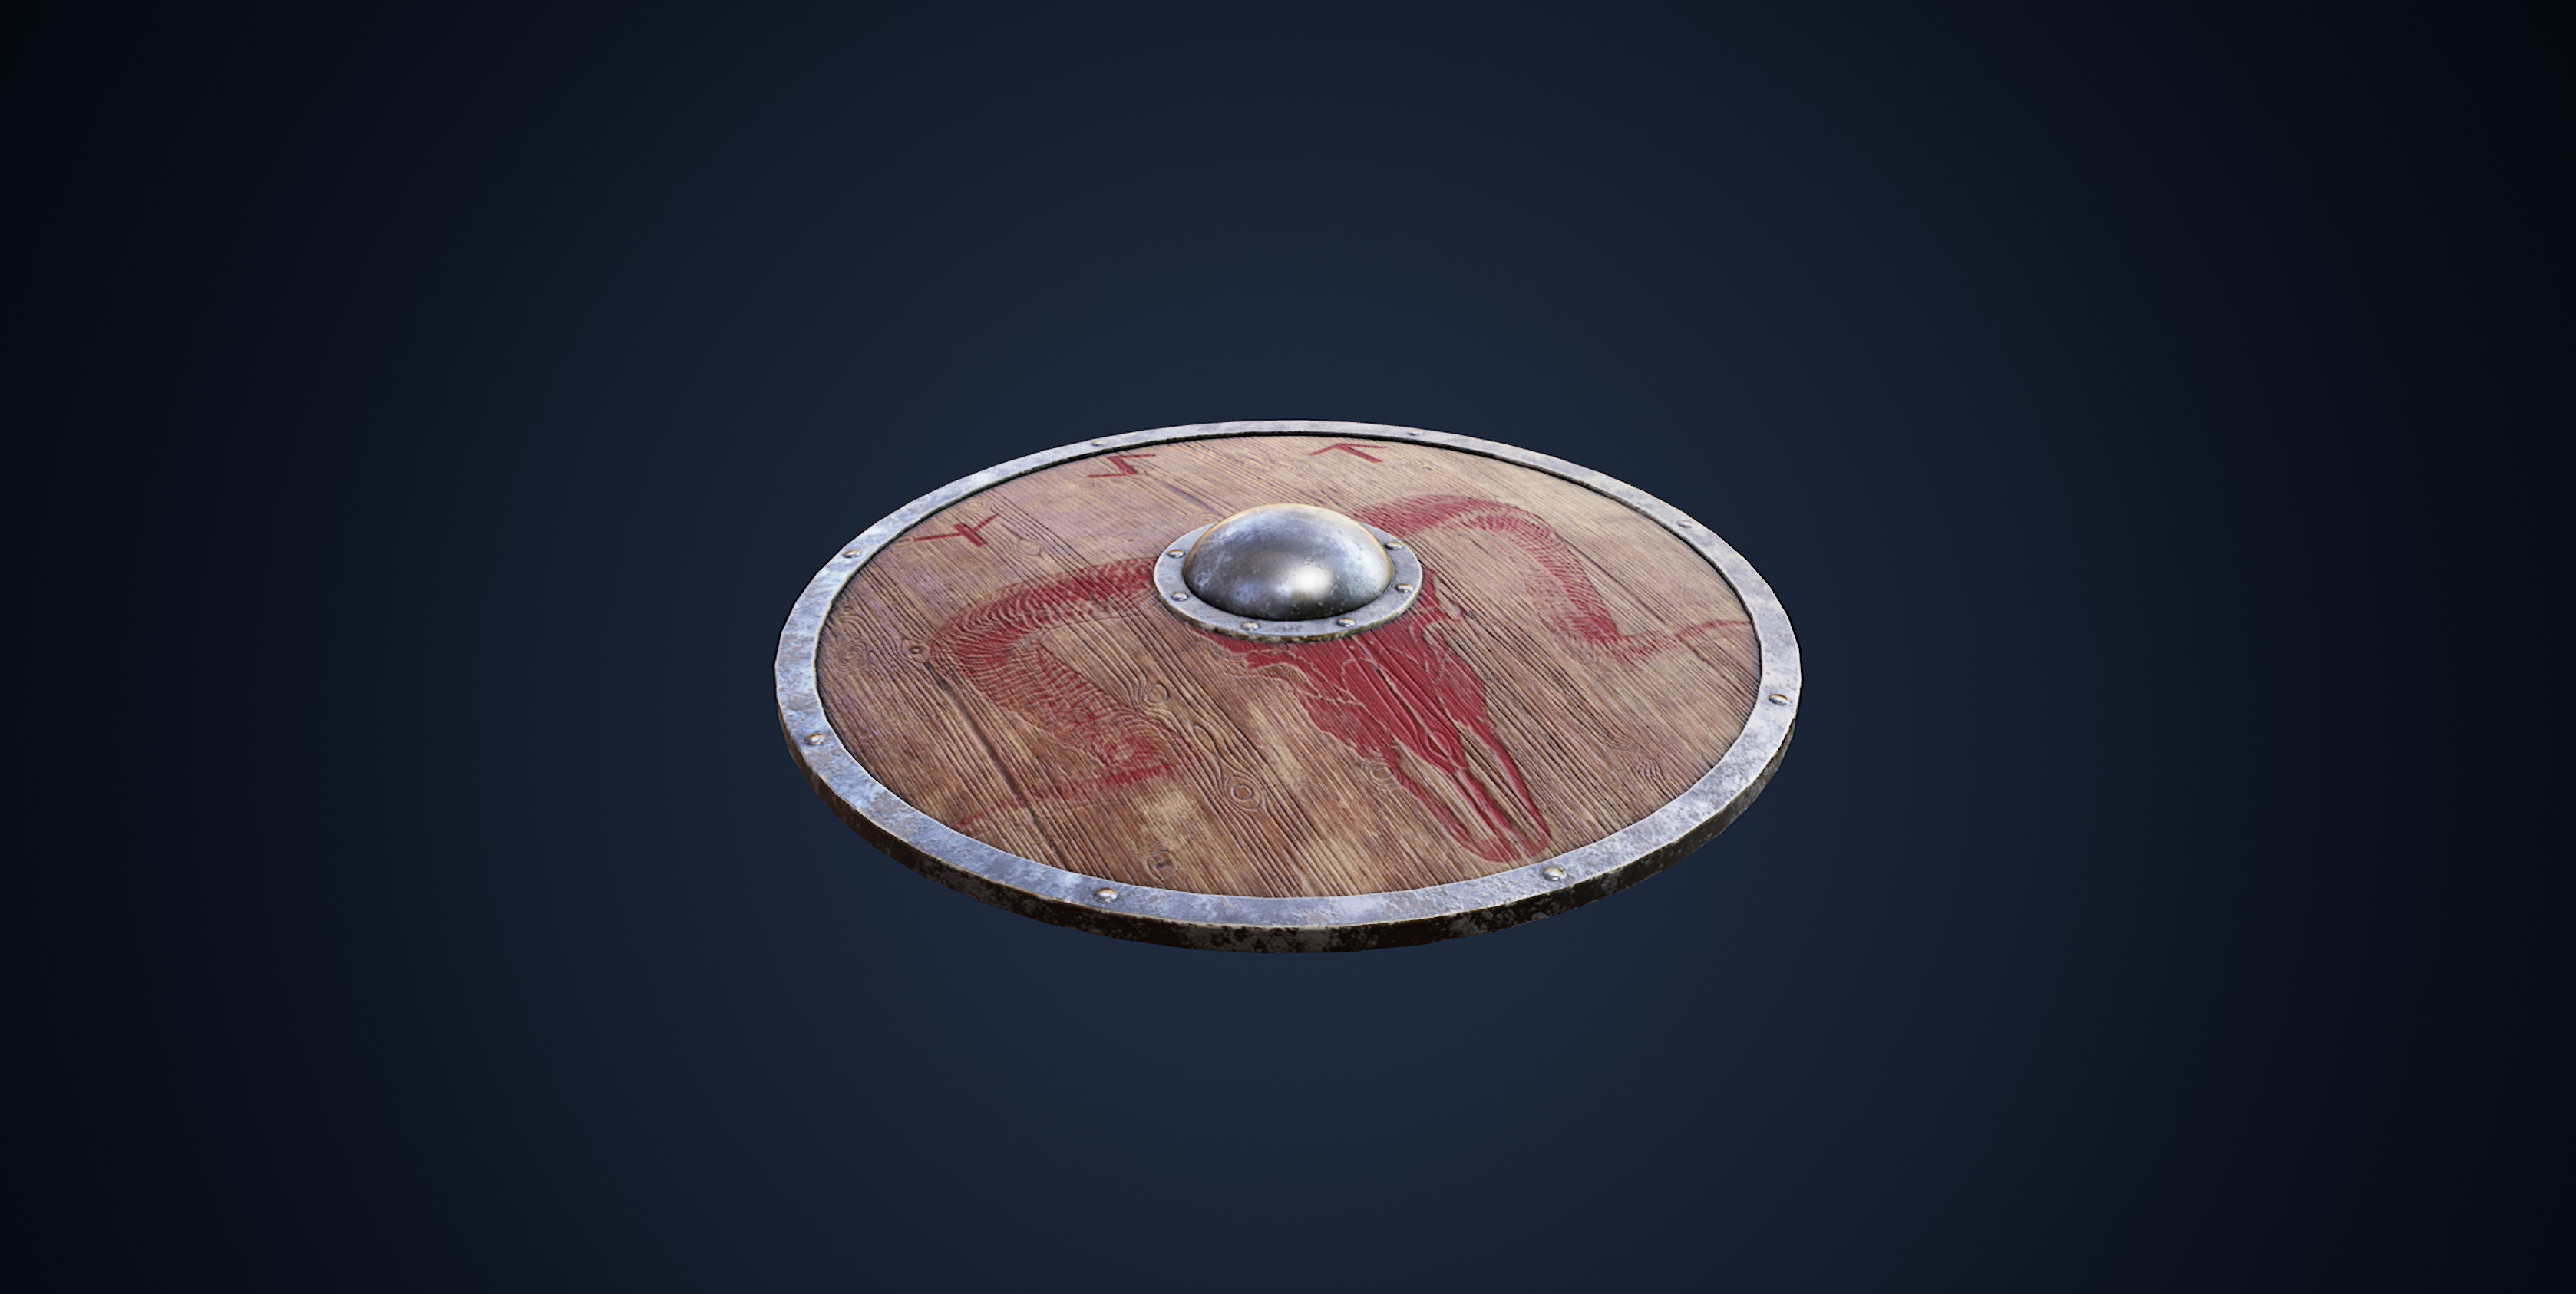 Shield (Angled view)